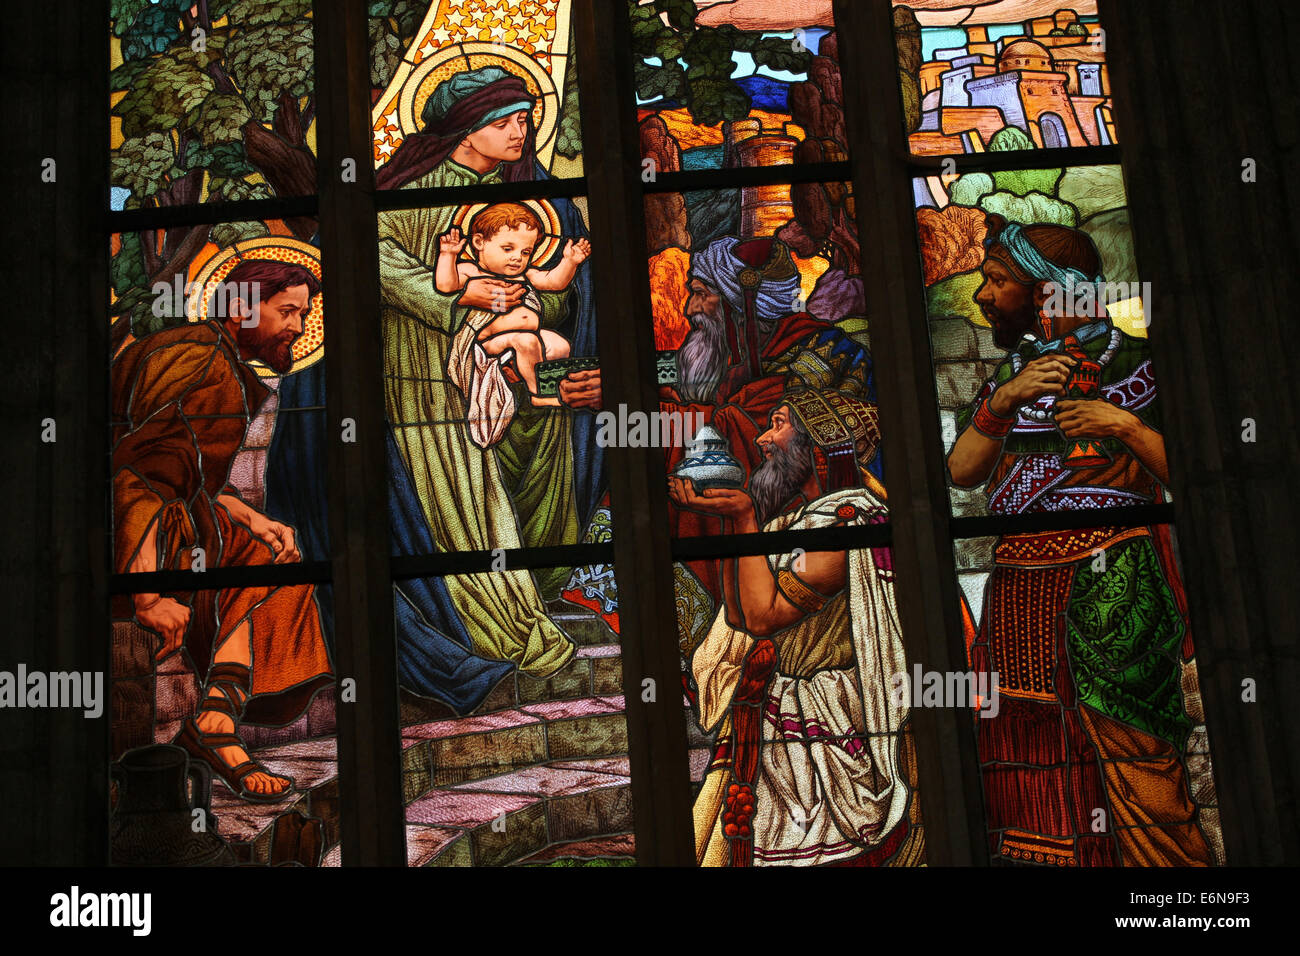 Adoration of the Magi. Stained glass window in Saint Barbara's Church in Kutna Hora, Czech Republic. - Stock Image